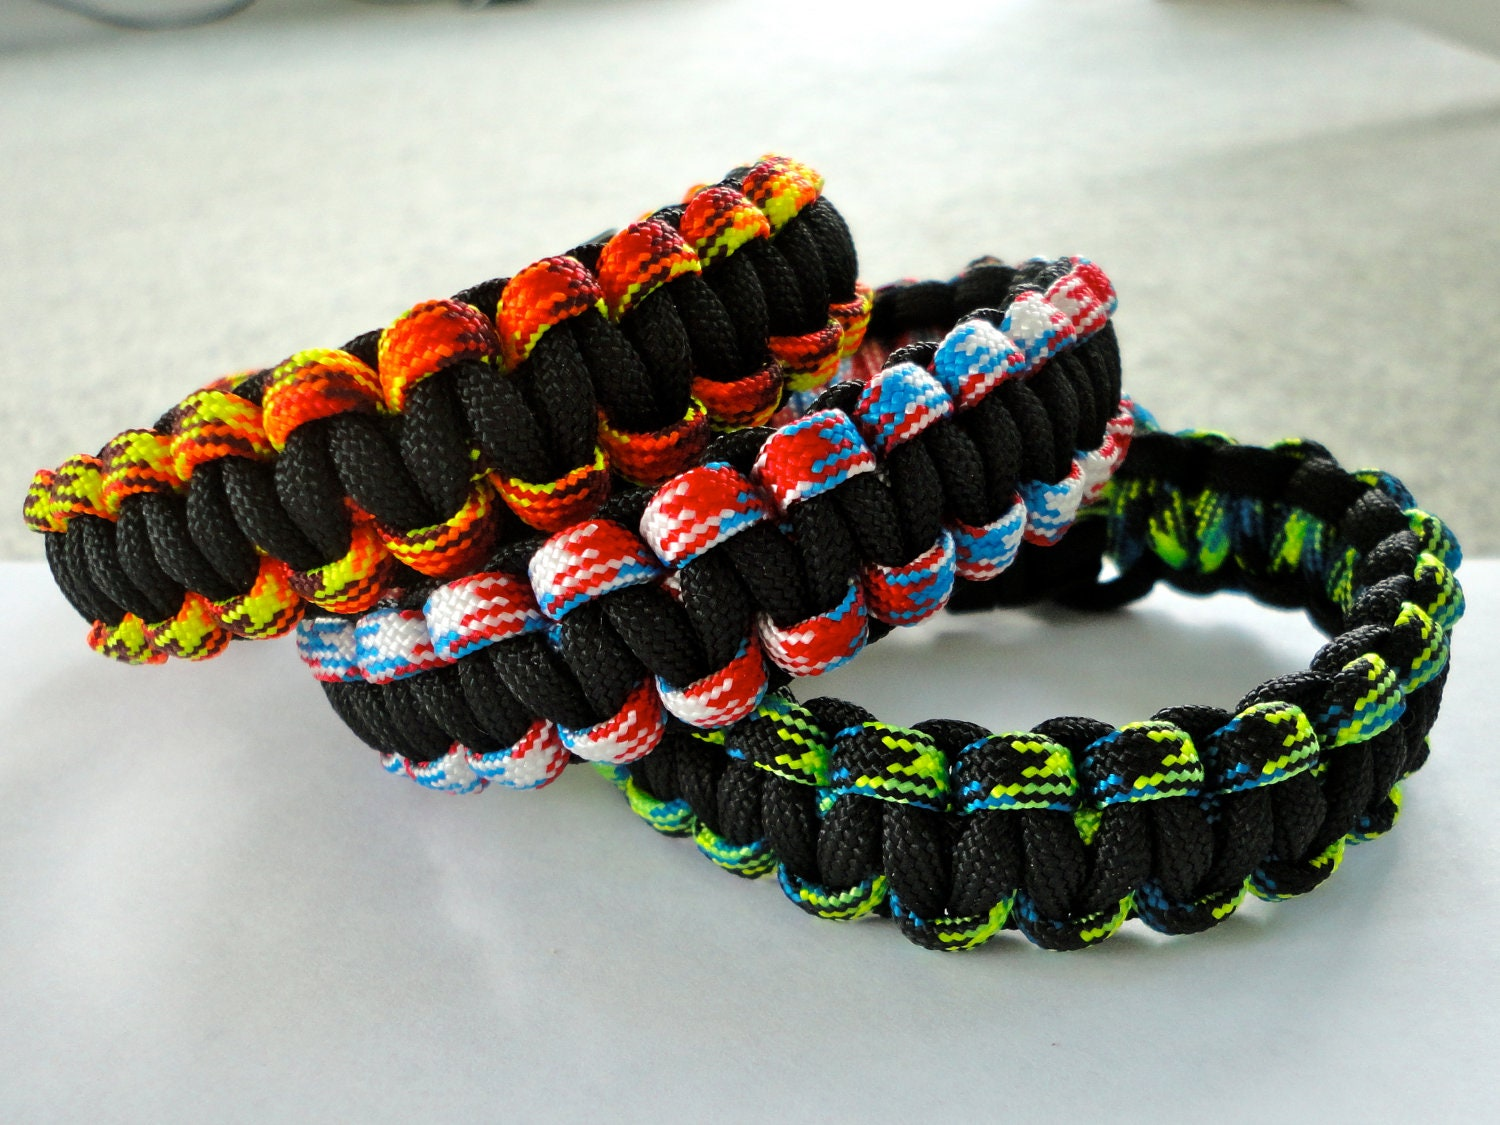 New Paracord Bracelet Pinwheel Seesaw camo red white blue orange blue green black Made in u.s.a.